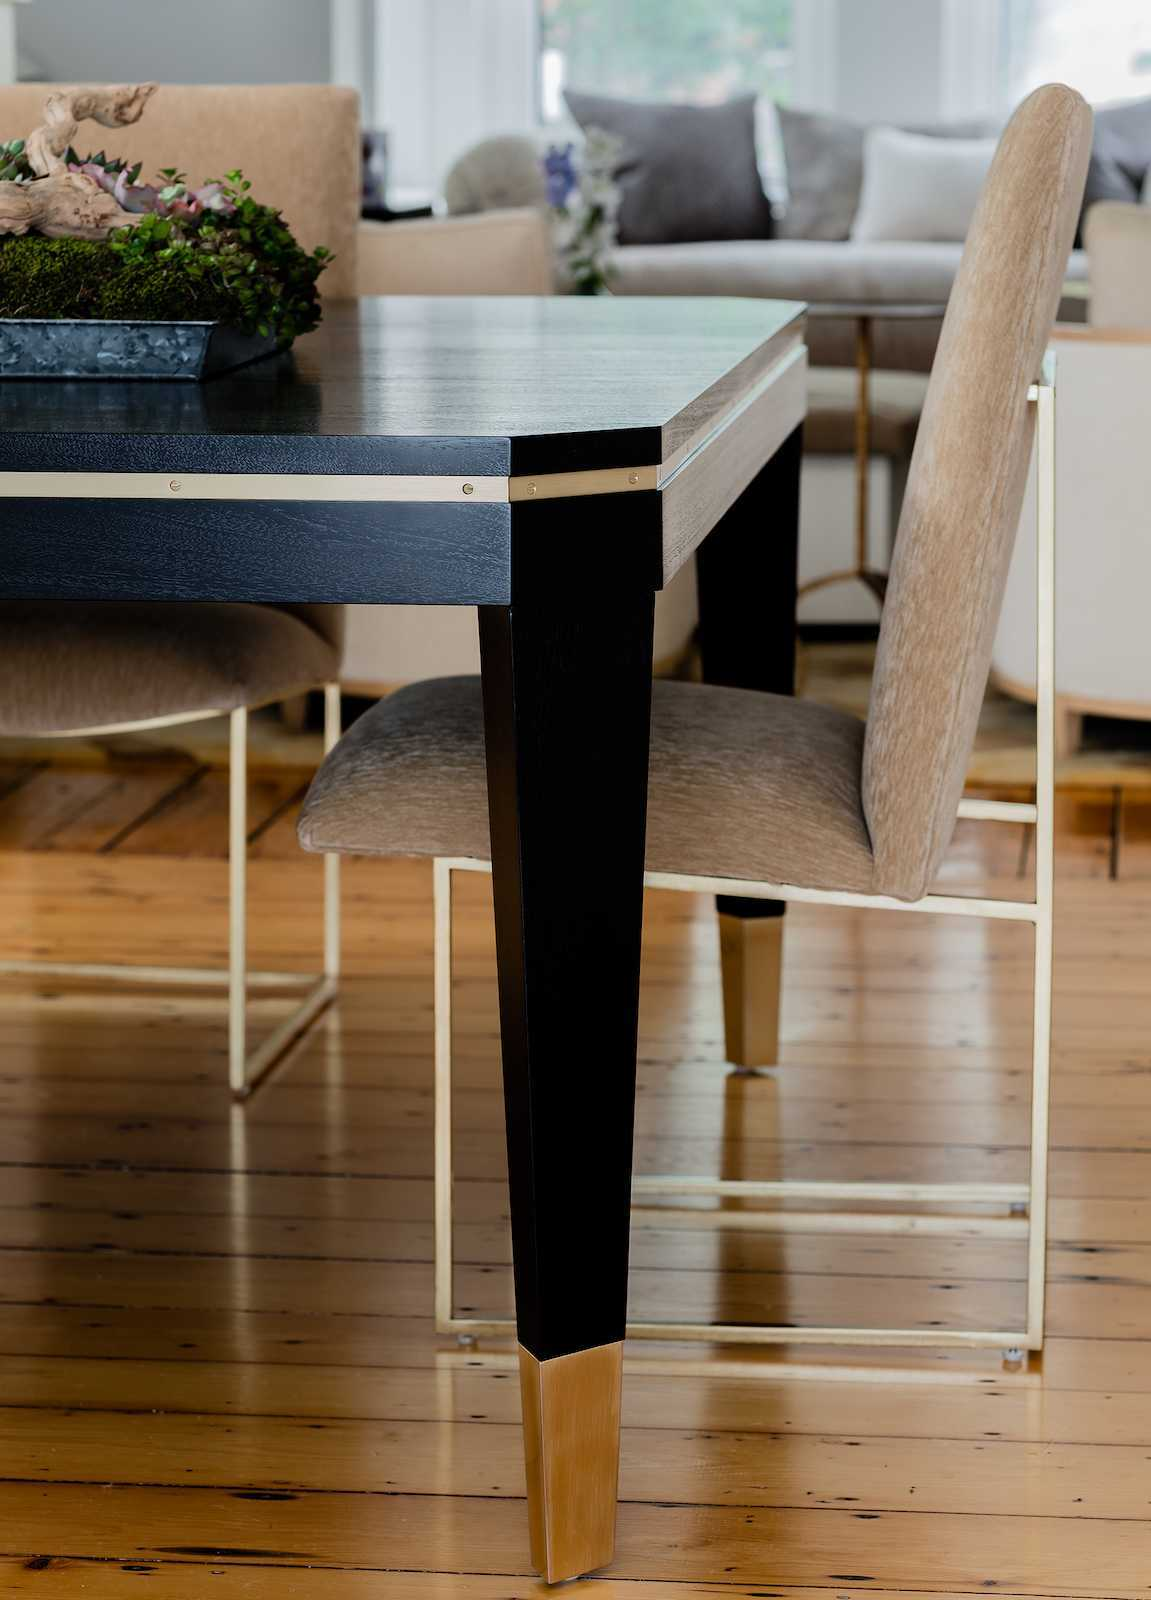 Platemark Interior Design Wellington Street South End Boston Dining Room Table Detail